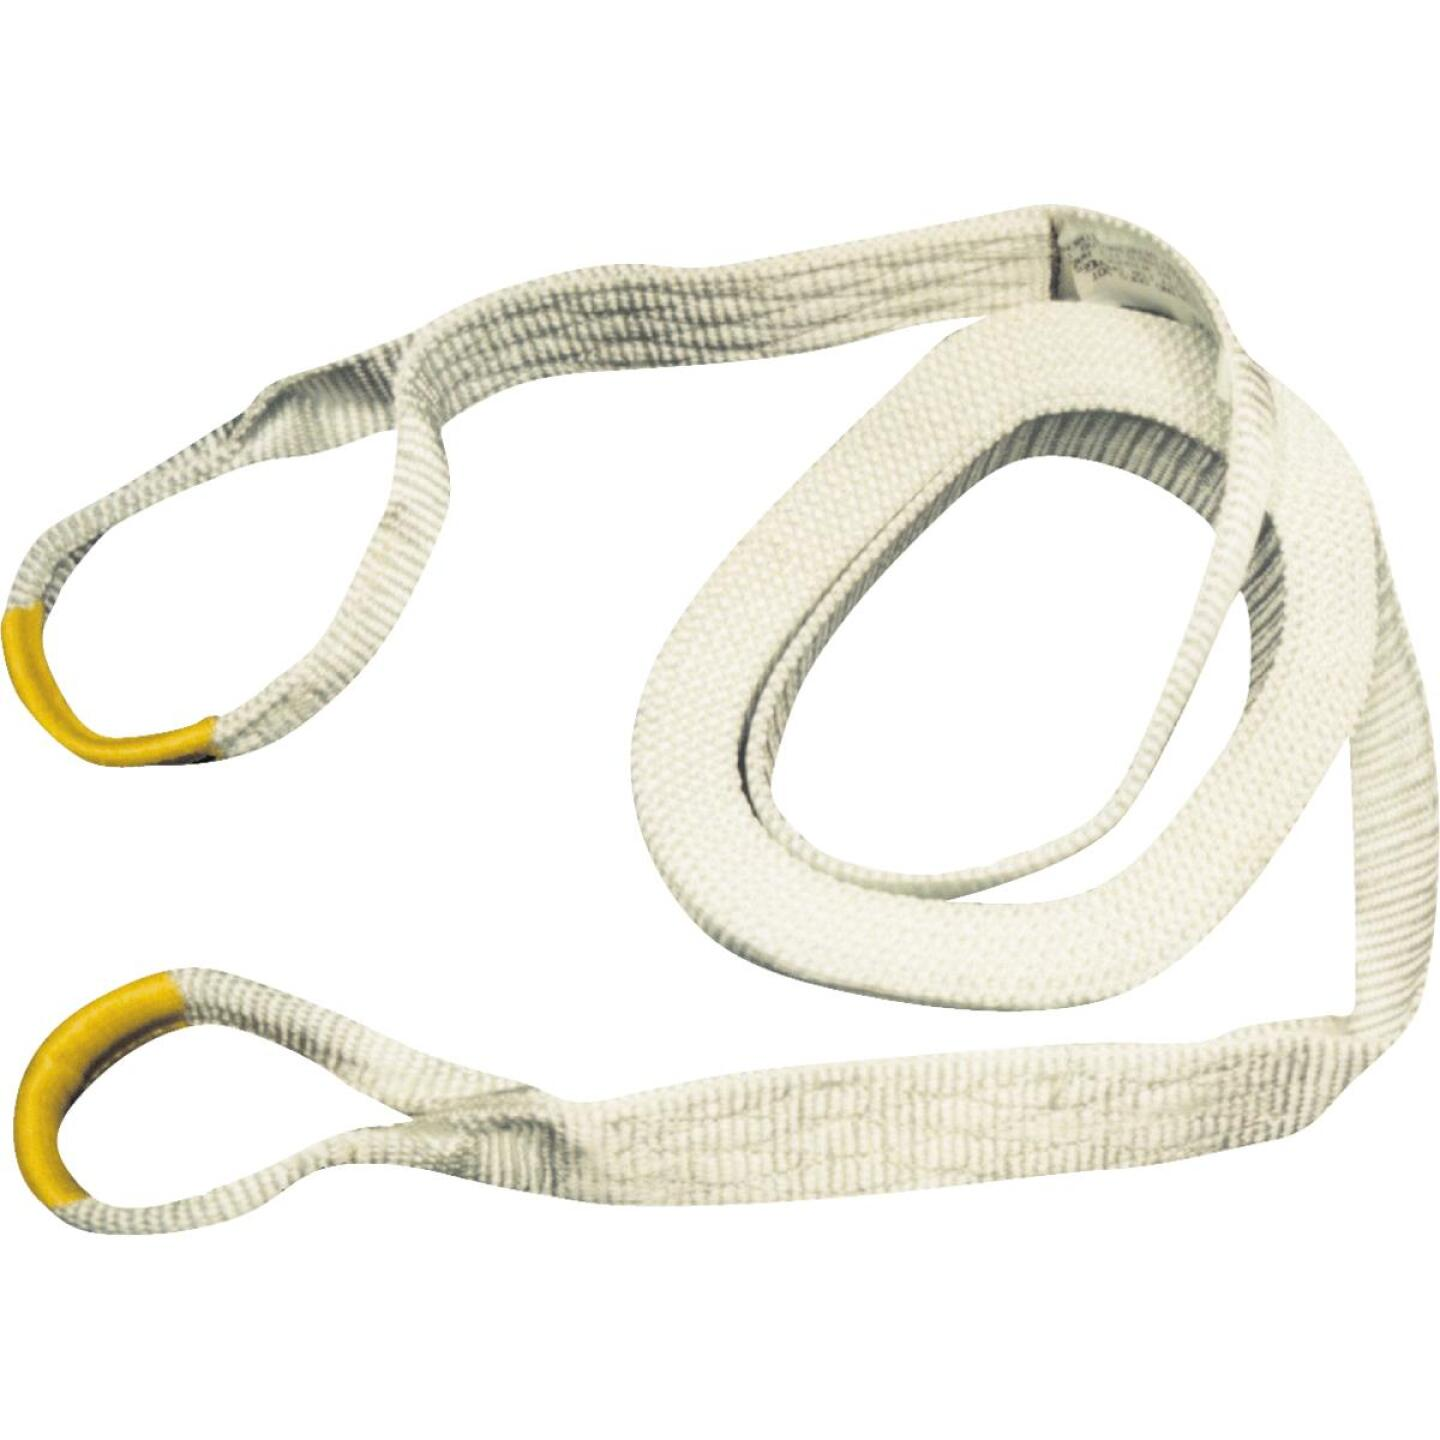 Erickson 2 In. x 20 Ft. 9000 Lb. Polyester Recovery Tow Strap, White Image 1